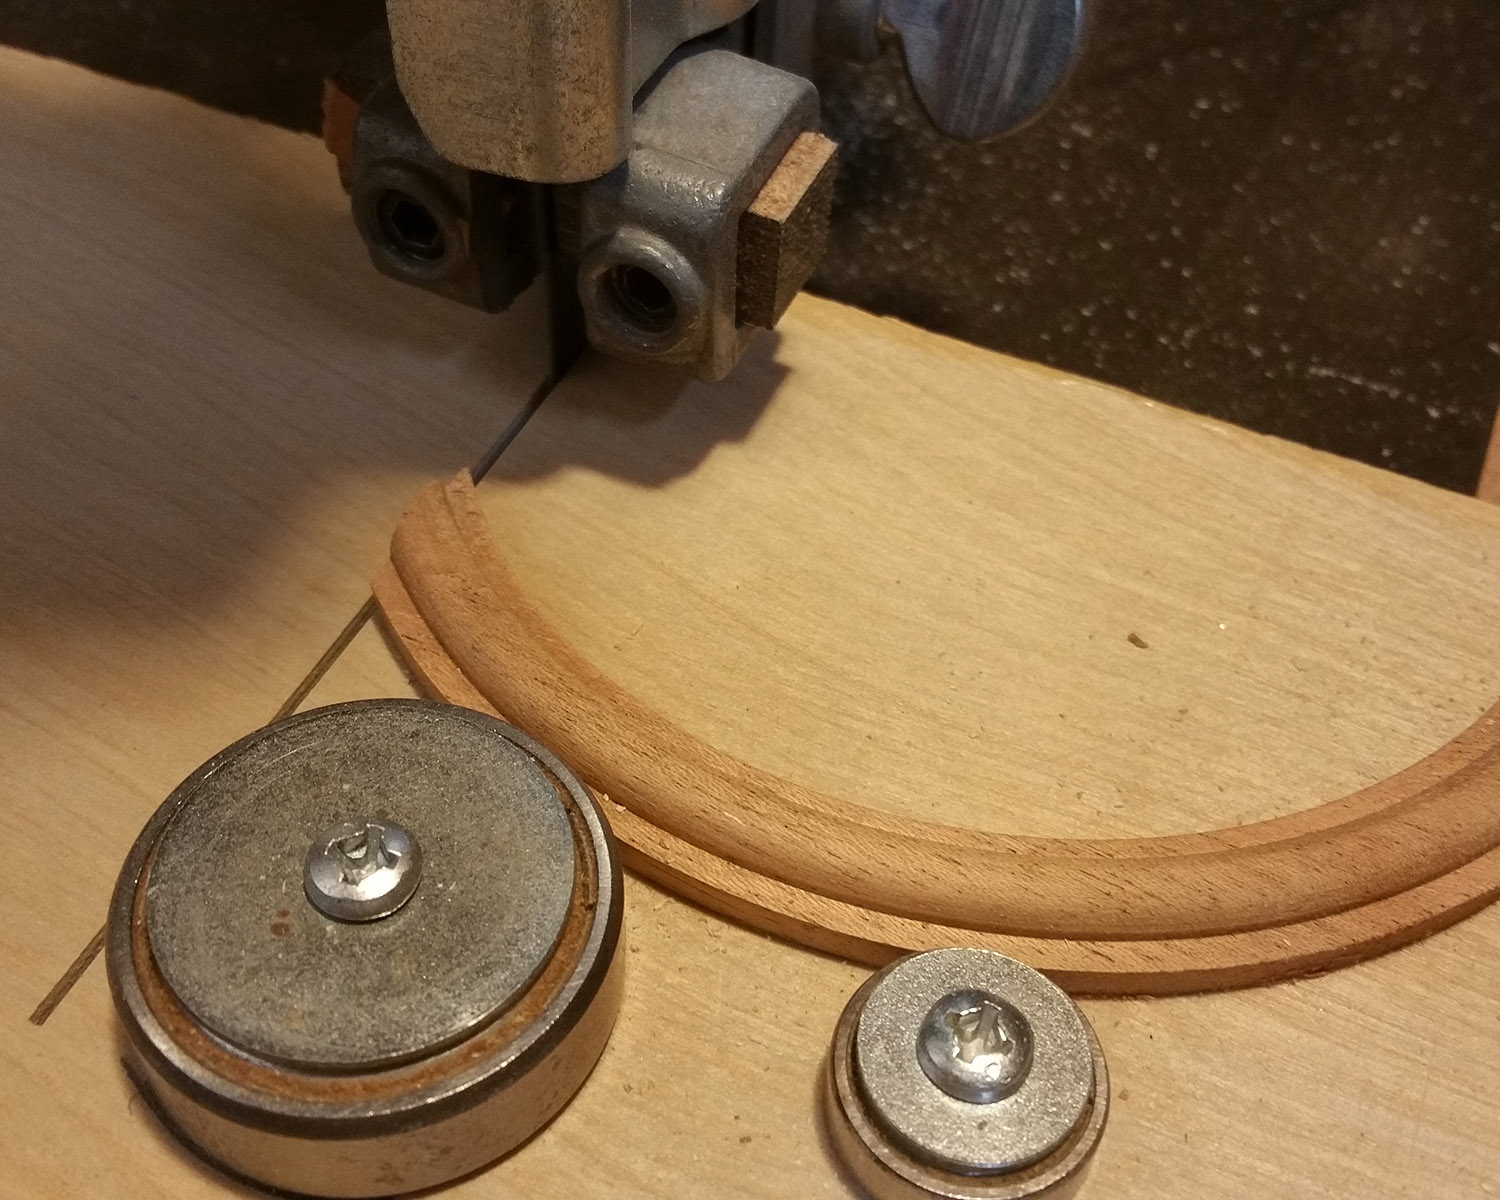 Make necessary adjustments to the bearing position.